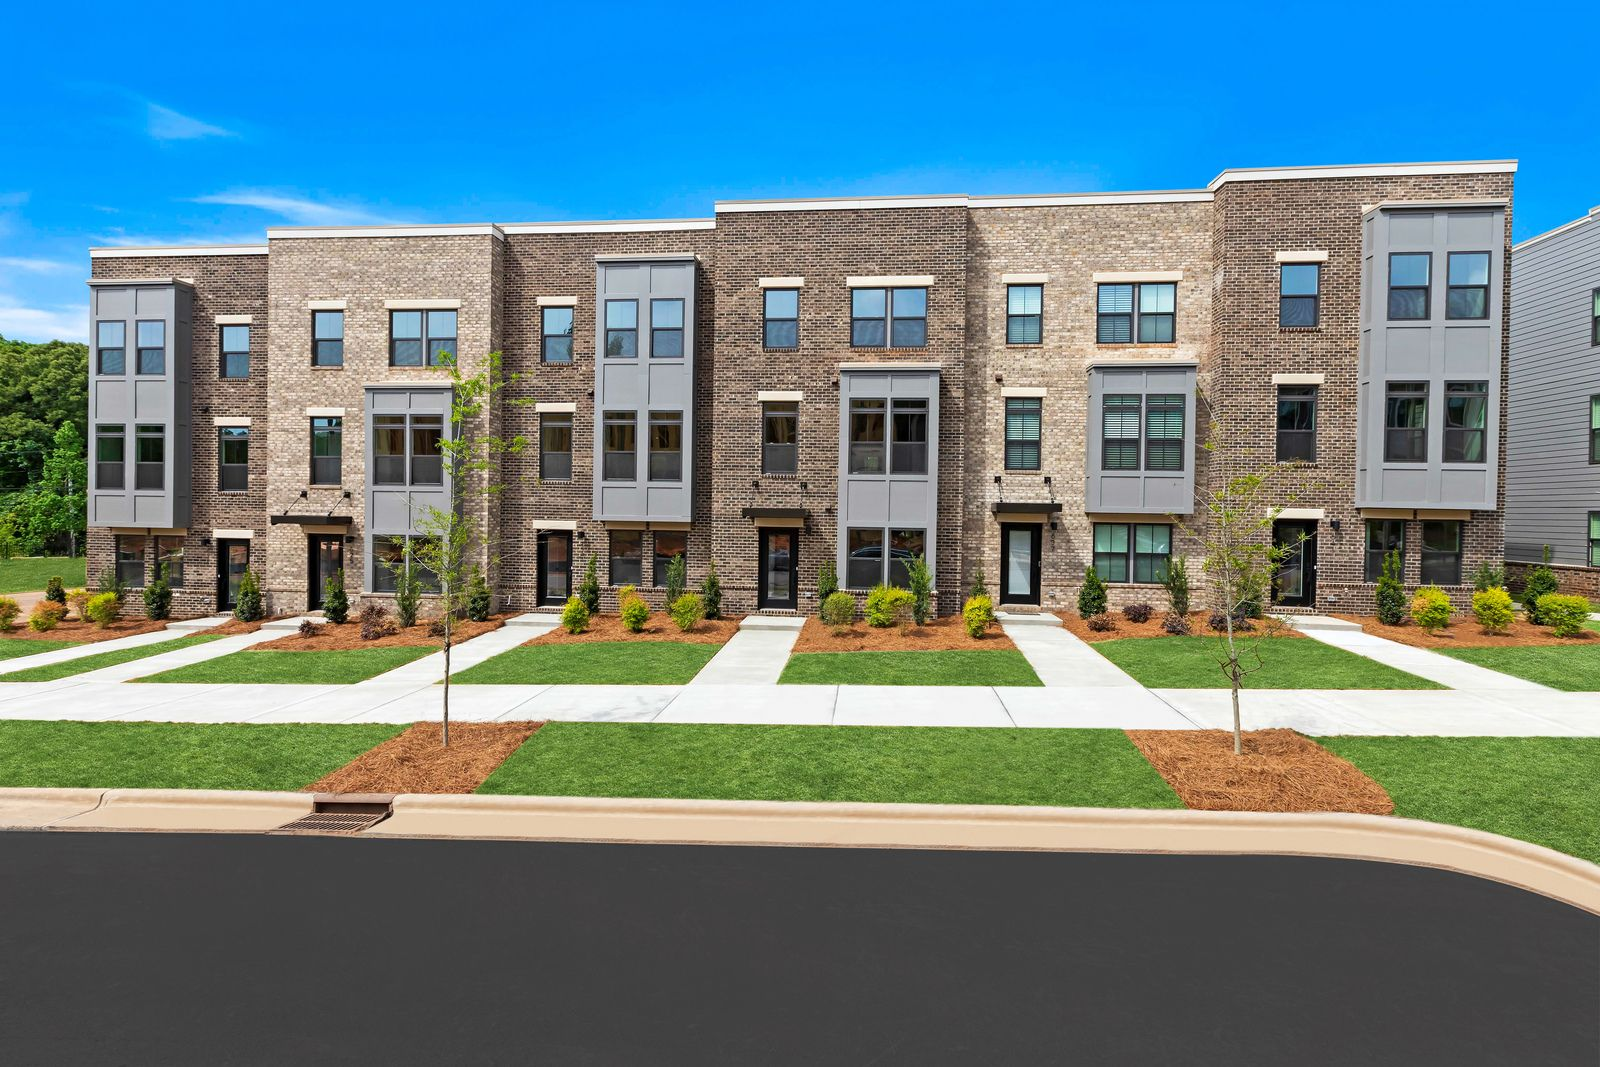 LIVE NEAR COTSWOLD, SOUTHPARK, AND UPTOWN CHARLOTTE:Want to live close to work, trendy restaurants, and more?Schedule a visit to Wendover Green with 2-car garage townhomes & options for a city view.